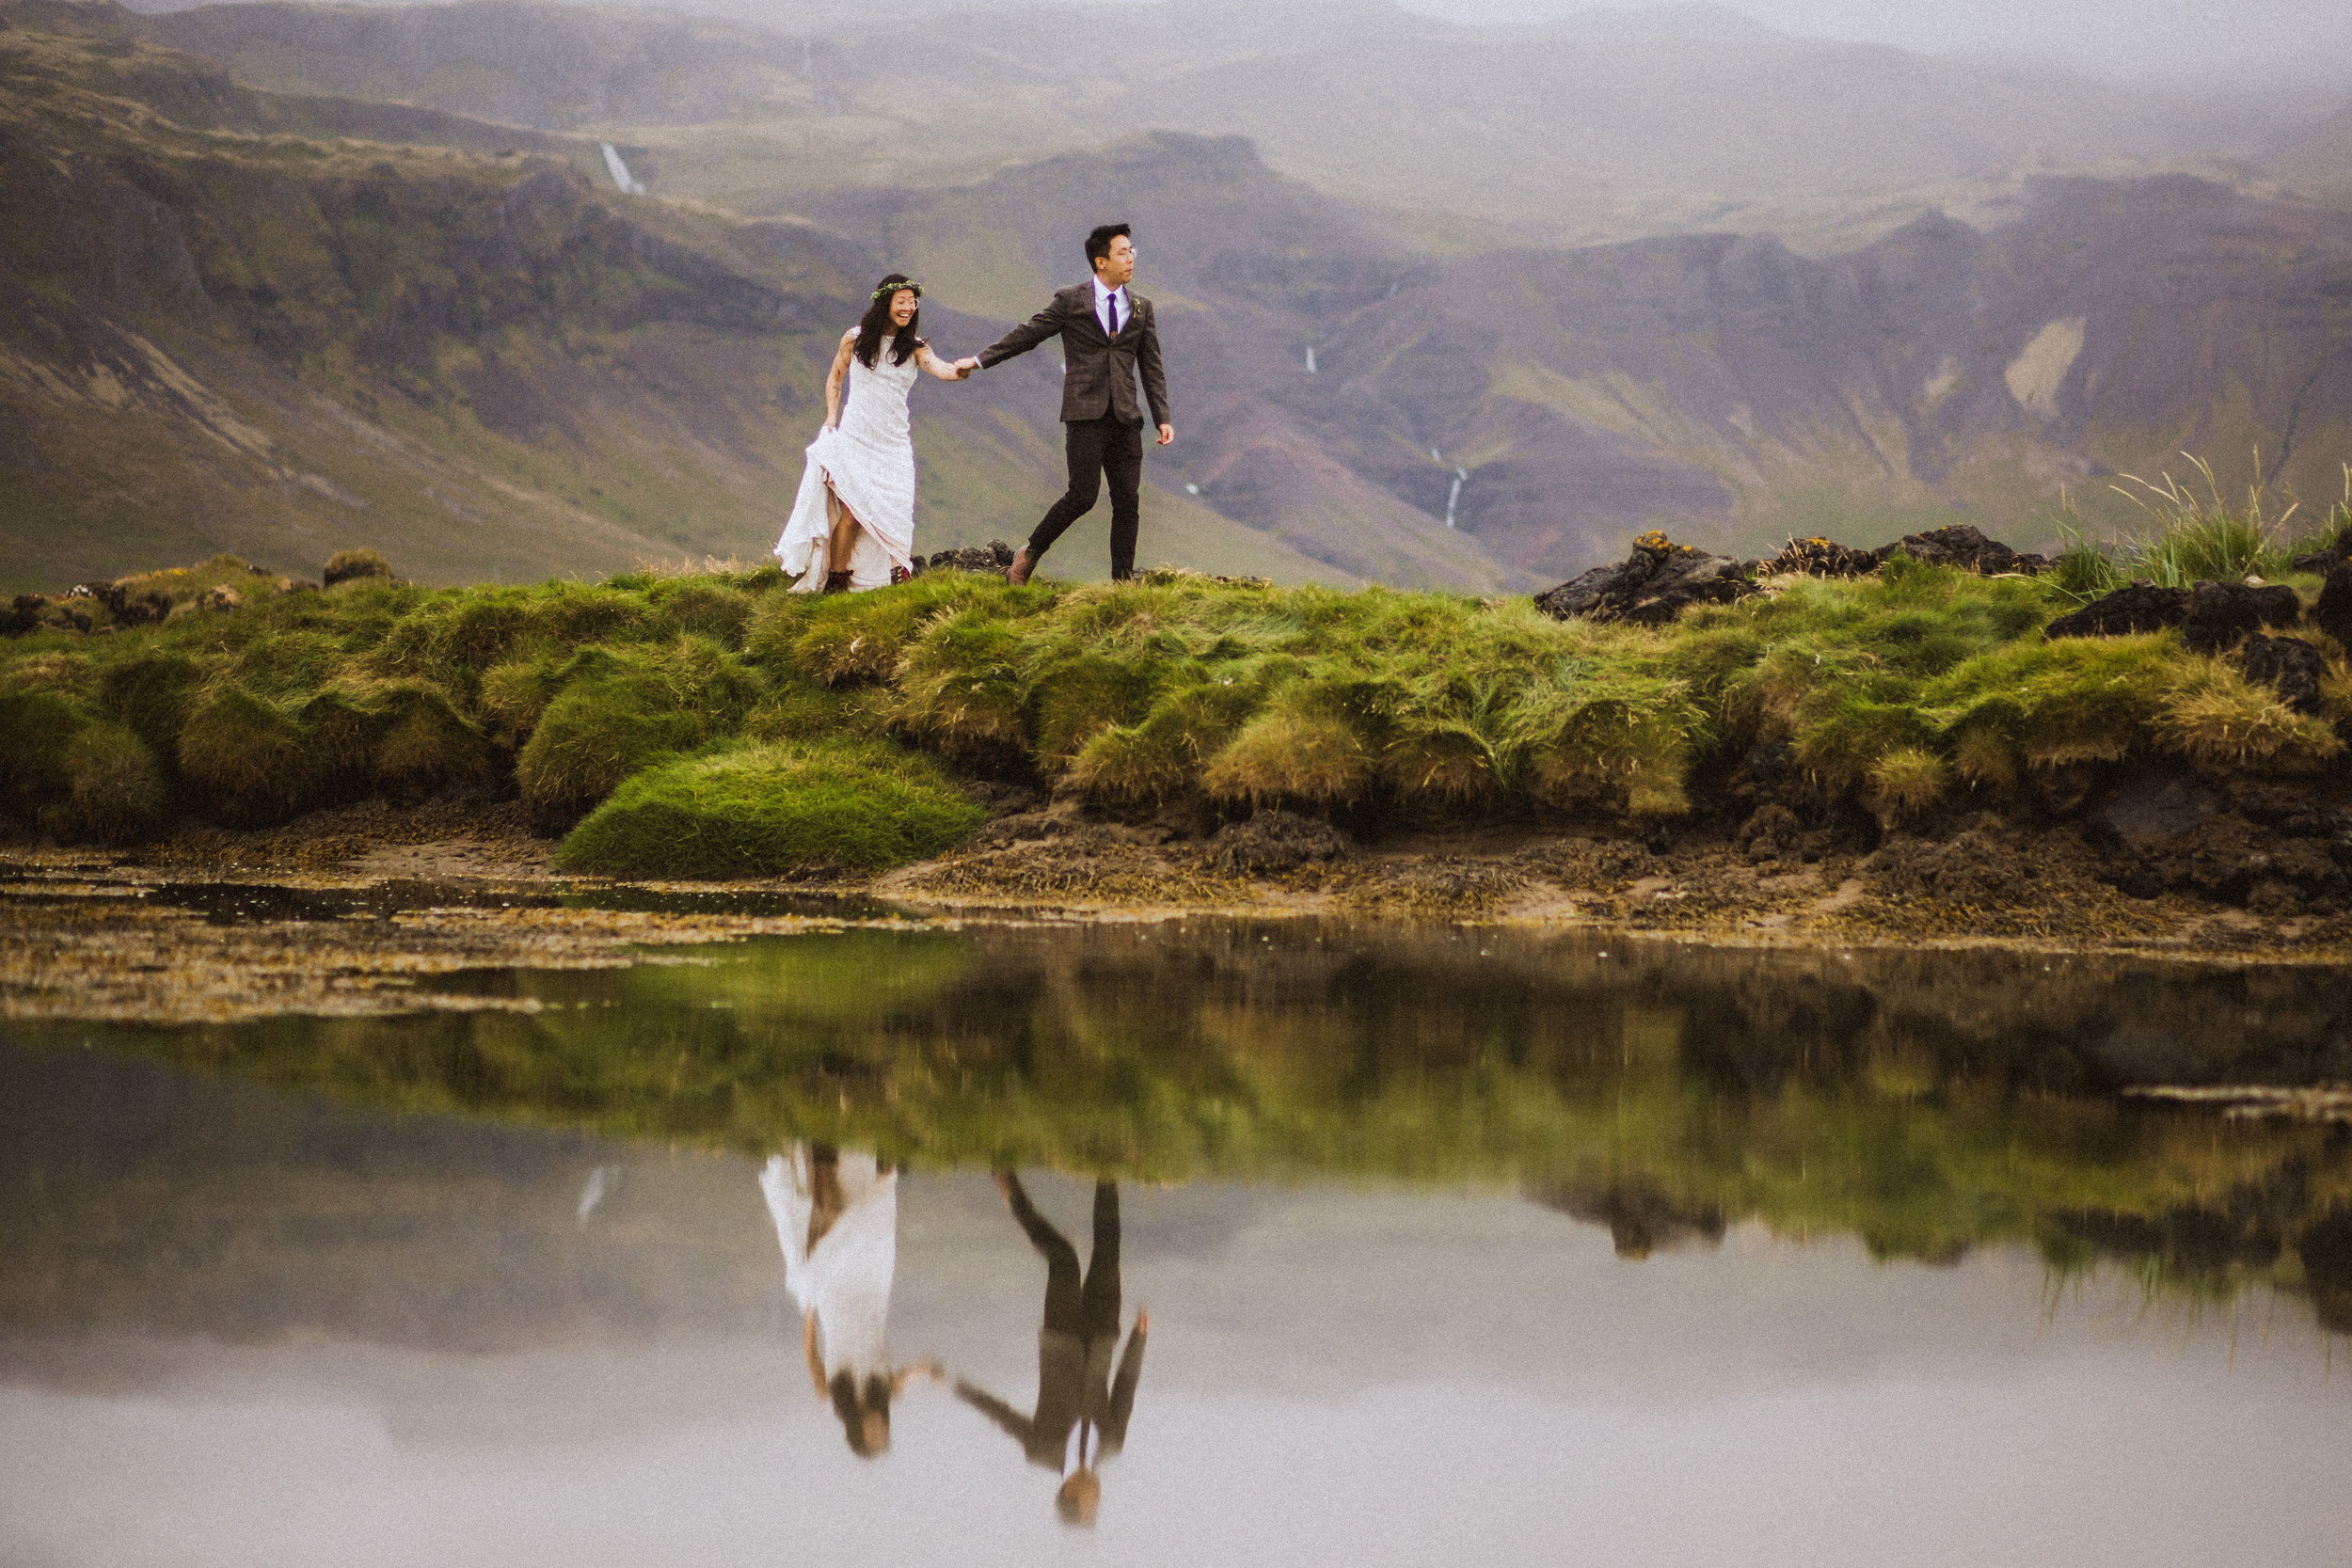 Best-wedding-photographer-in-iceland-kristin-maria44.jpg